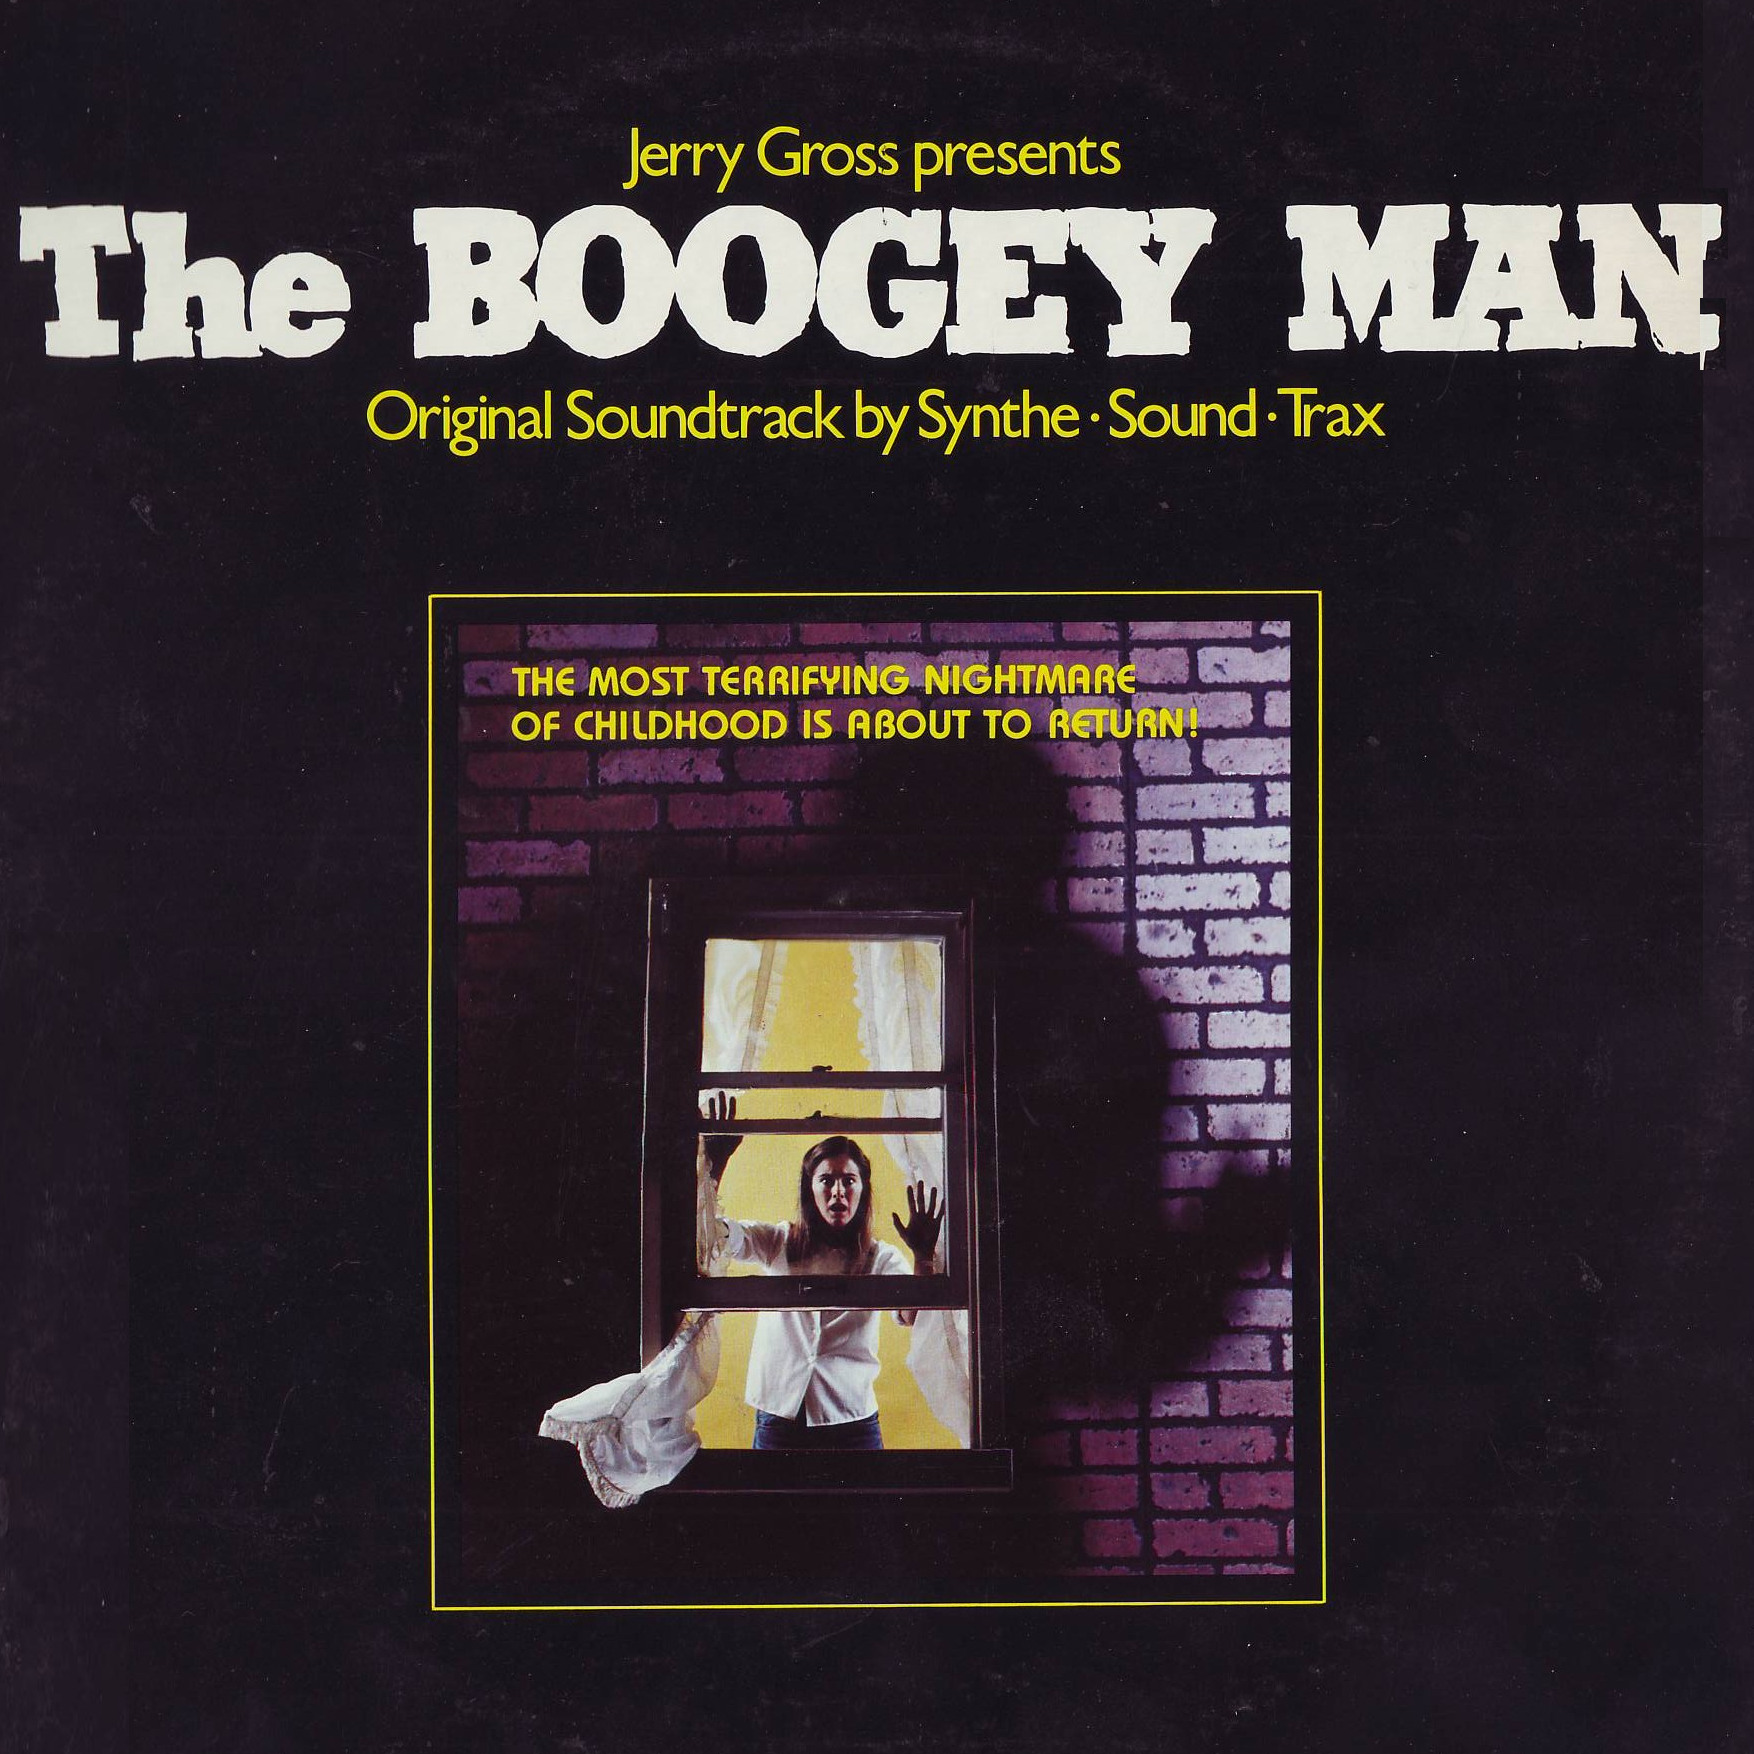 boogey-man-lp-cover